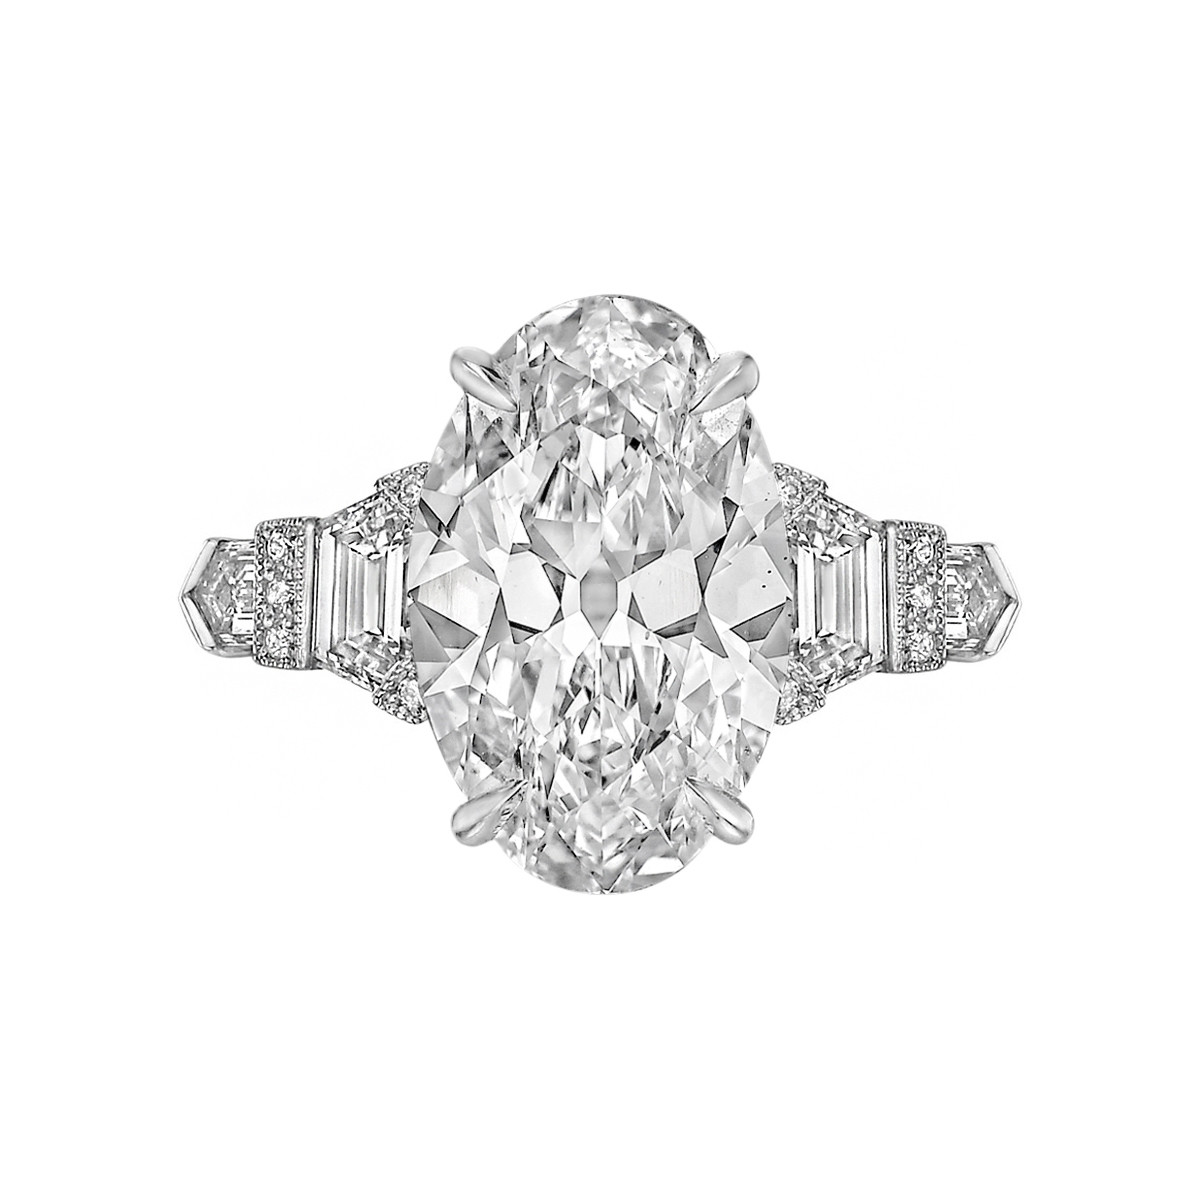 4.69ct Near-Colorless Oval-Cut Diamond Ring